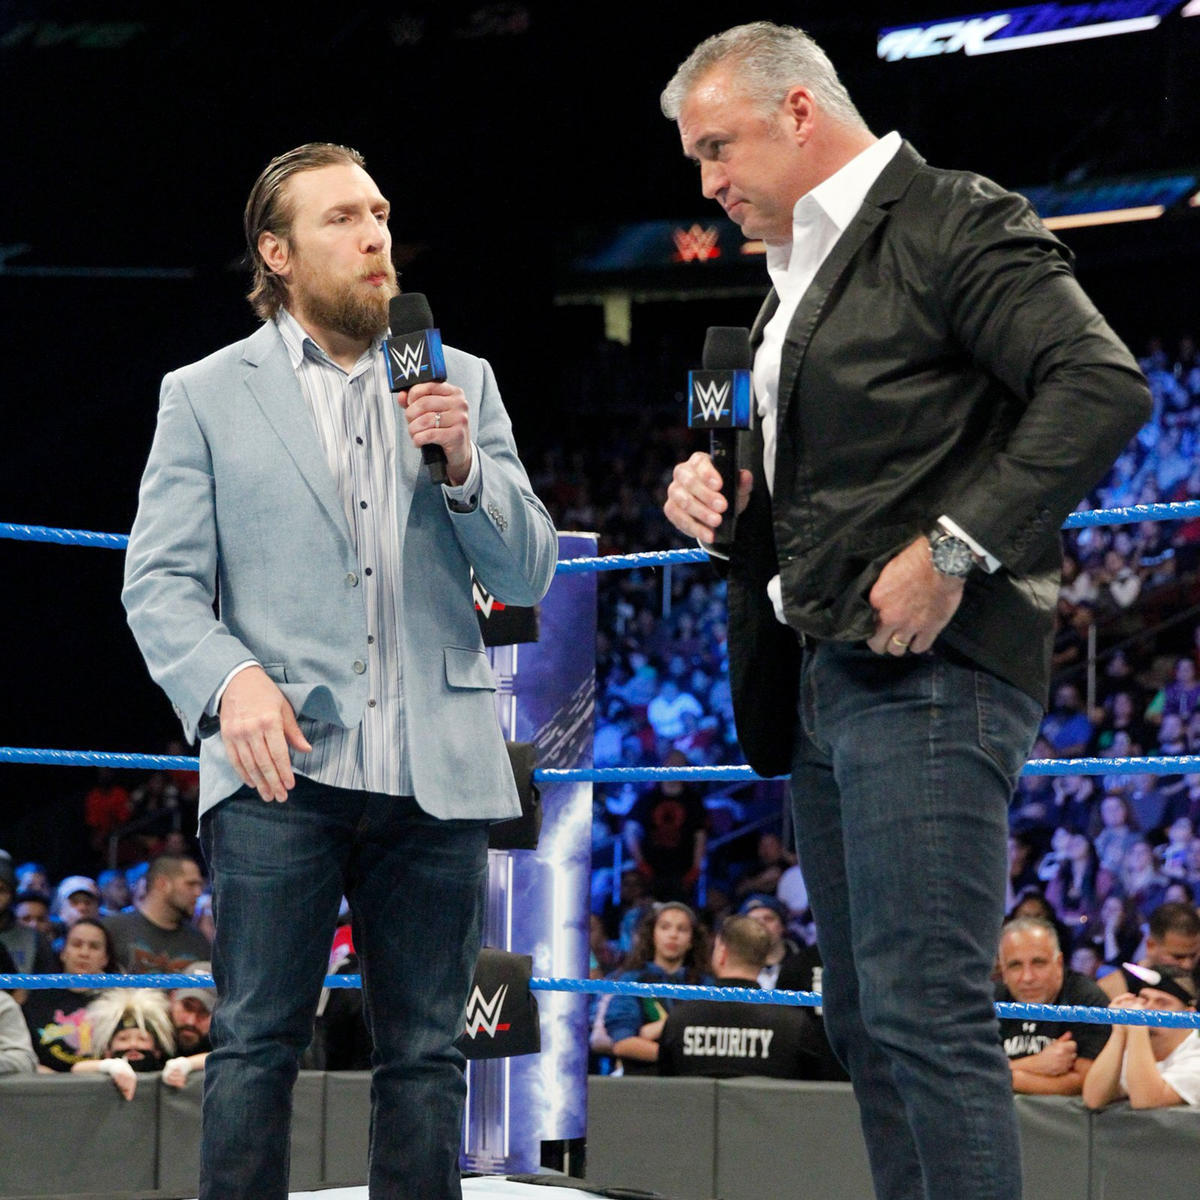 Bryan says he did what he did to protect Shane from himself and to protect their idea that SmackDown LIVE is the Land of Opportunity.